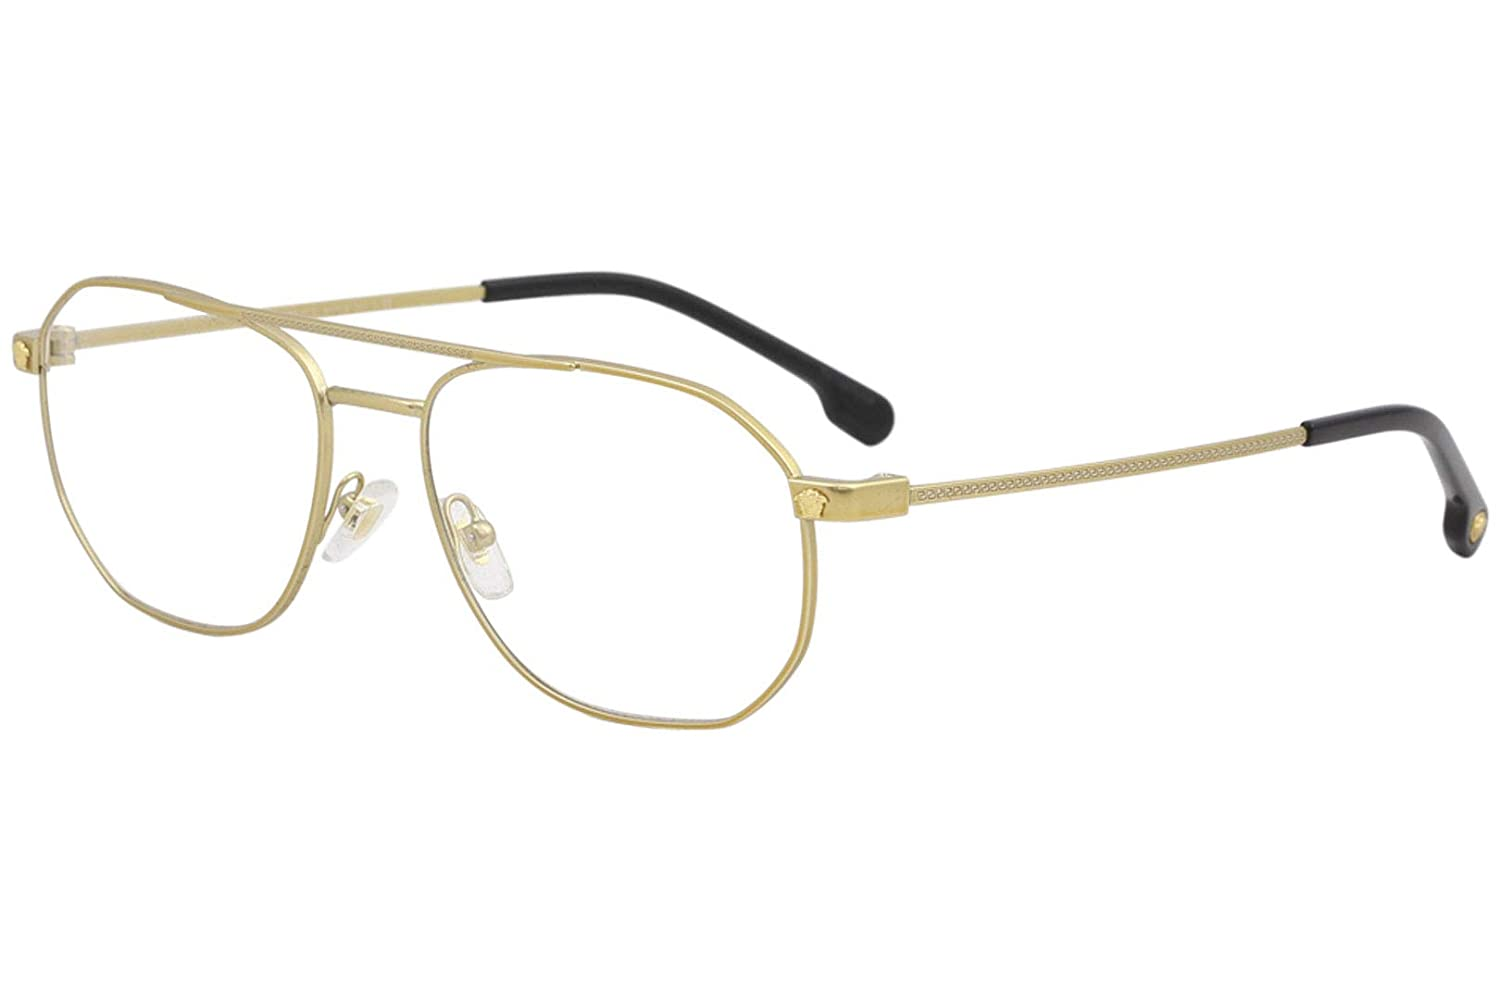 0fa9475140 Amazon.com  Eyeglasses Versace VE 1252 1428 TRIBUTE GOLD  Clothing